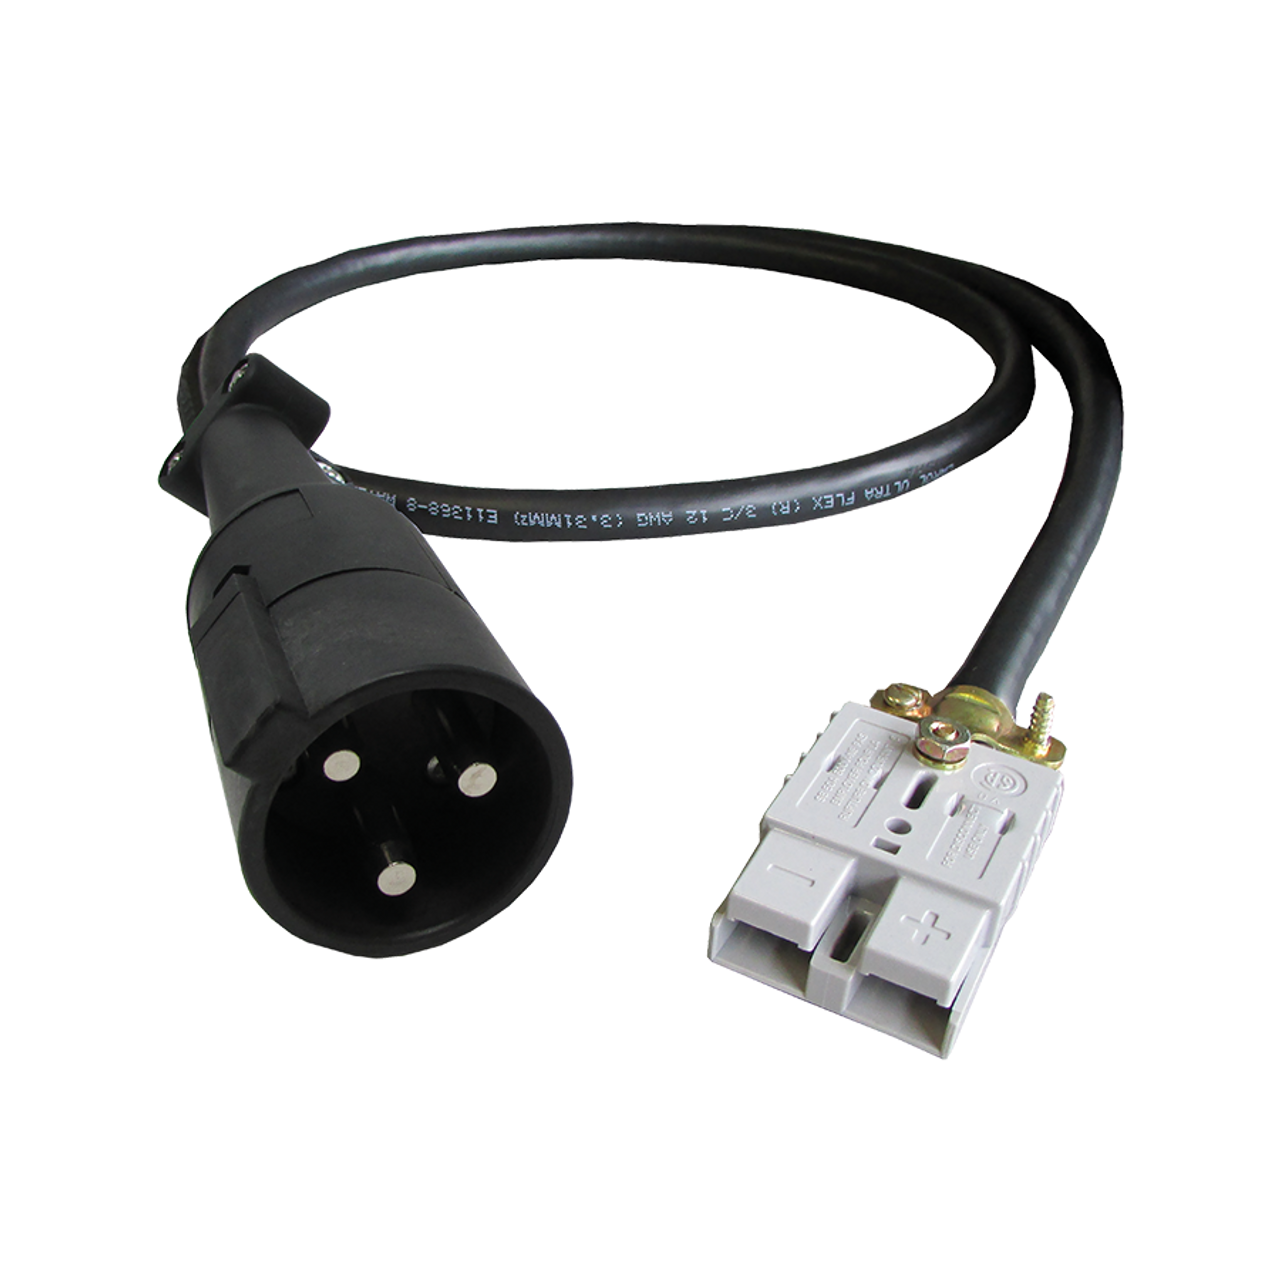 48V Star Charger Cable for Chargeplus Golf Cart Charger